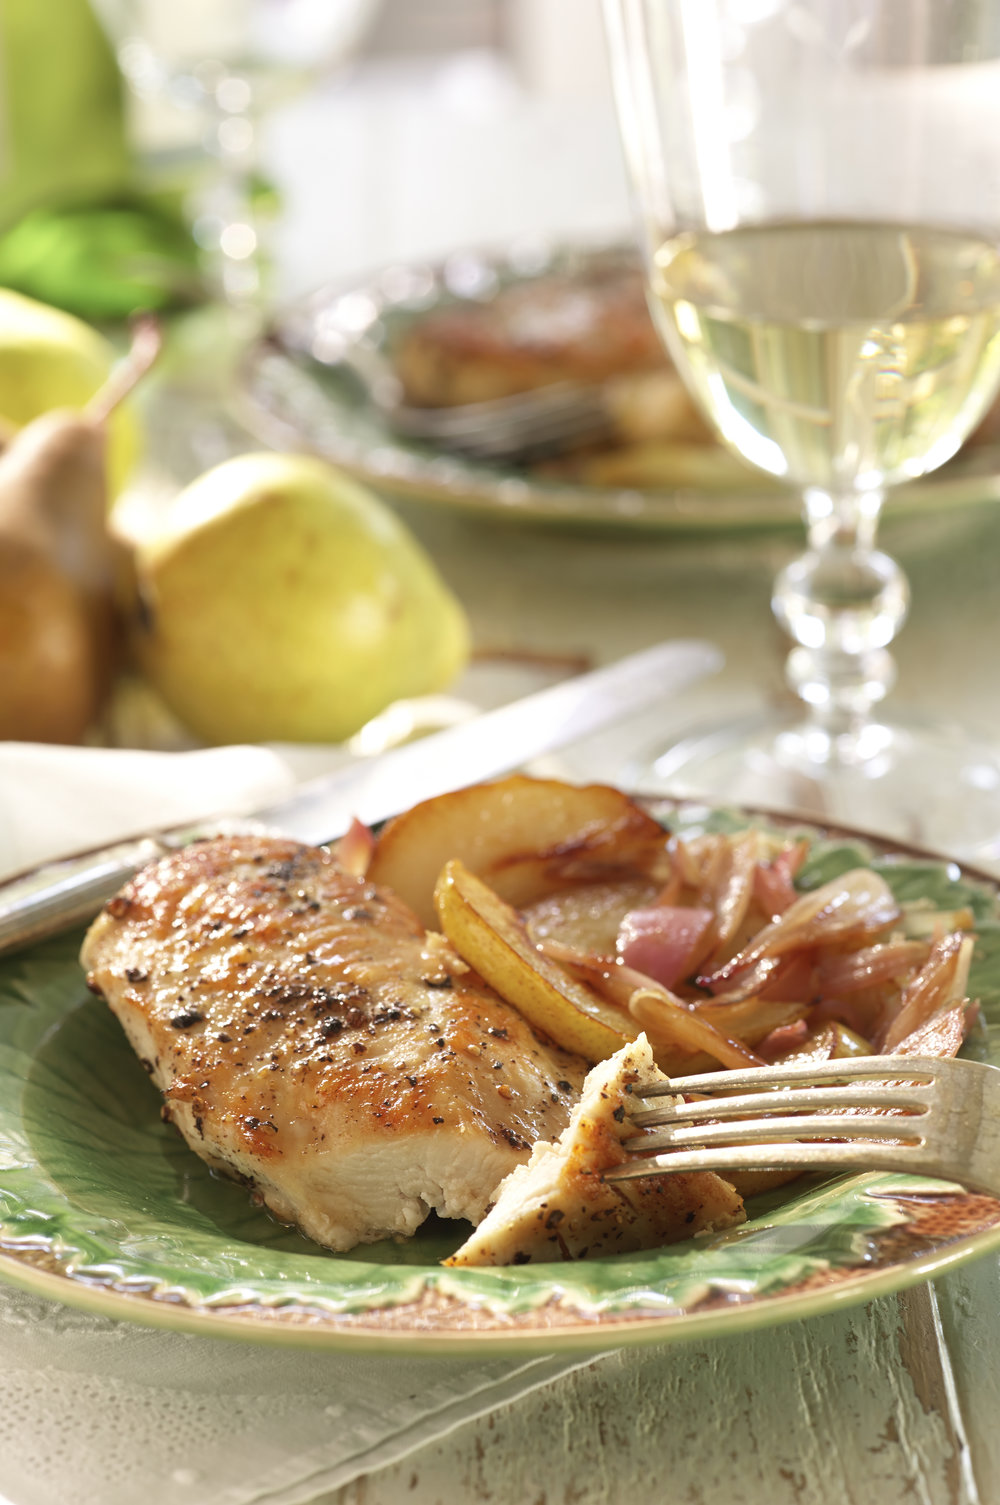 Chicken_Breasts_with_Caramelized_Pears_and_Shallots_00569.jpg